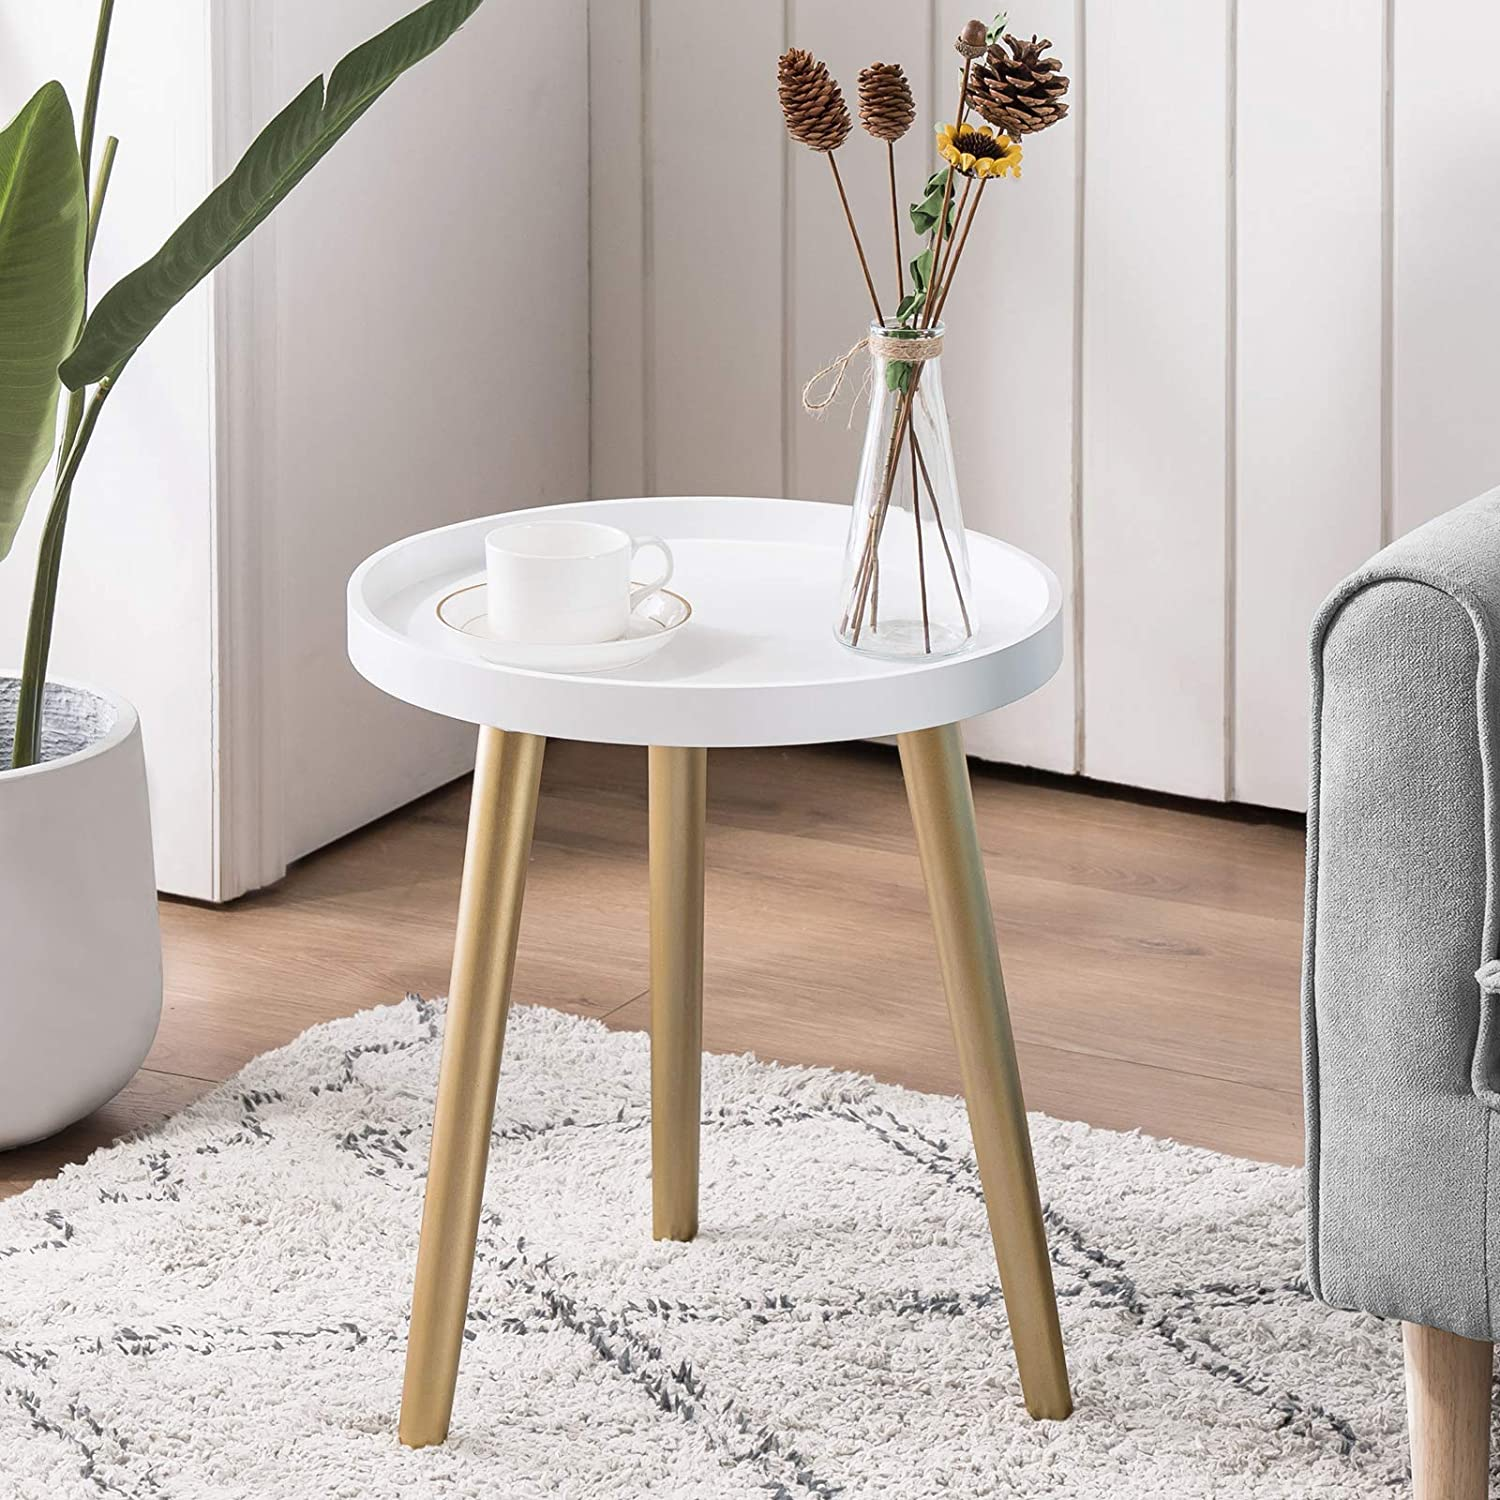 APICIZON Round Side Table, White Tray Nightstand Sofa Coffee End Table for Living Room, Bedroom, Small Spaces, Easy Assembly Decro Bedside Table, 15 x 18 Inches(White, Gold)